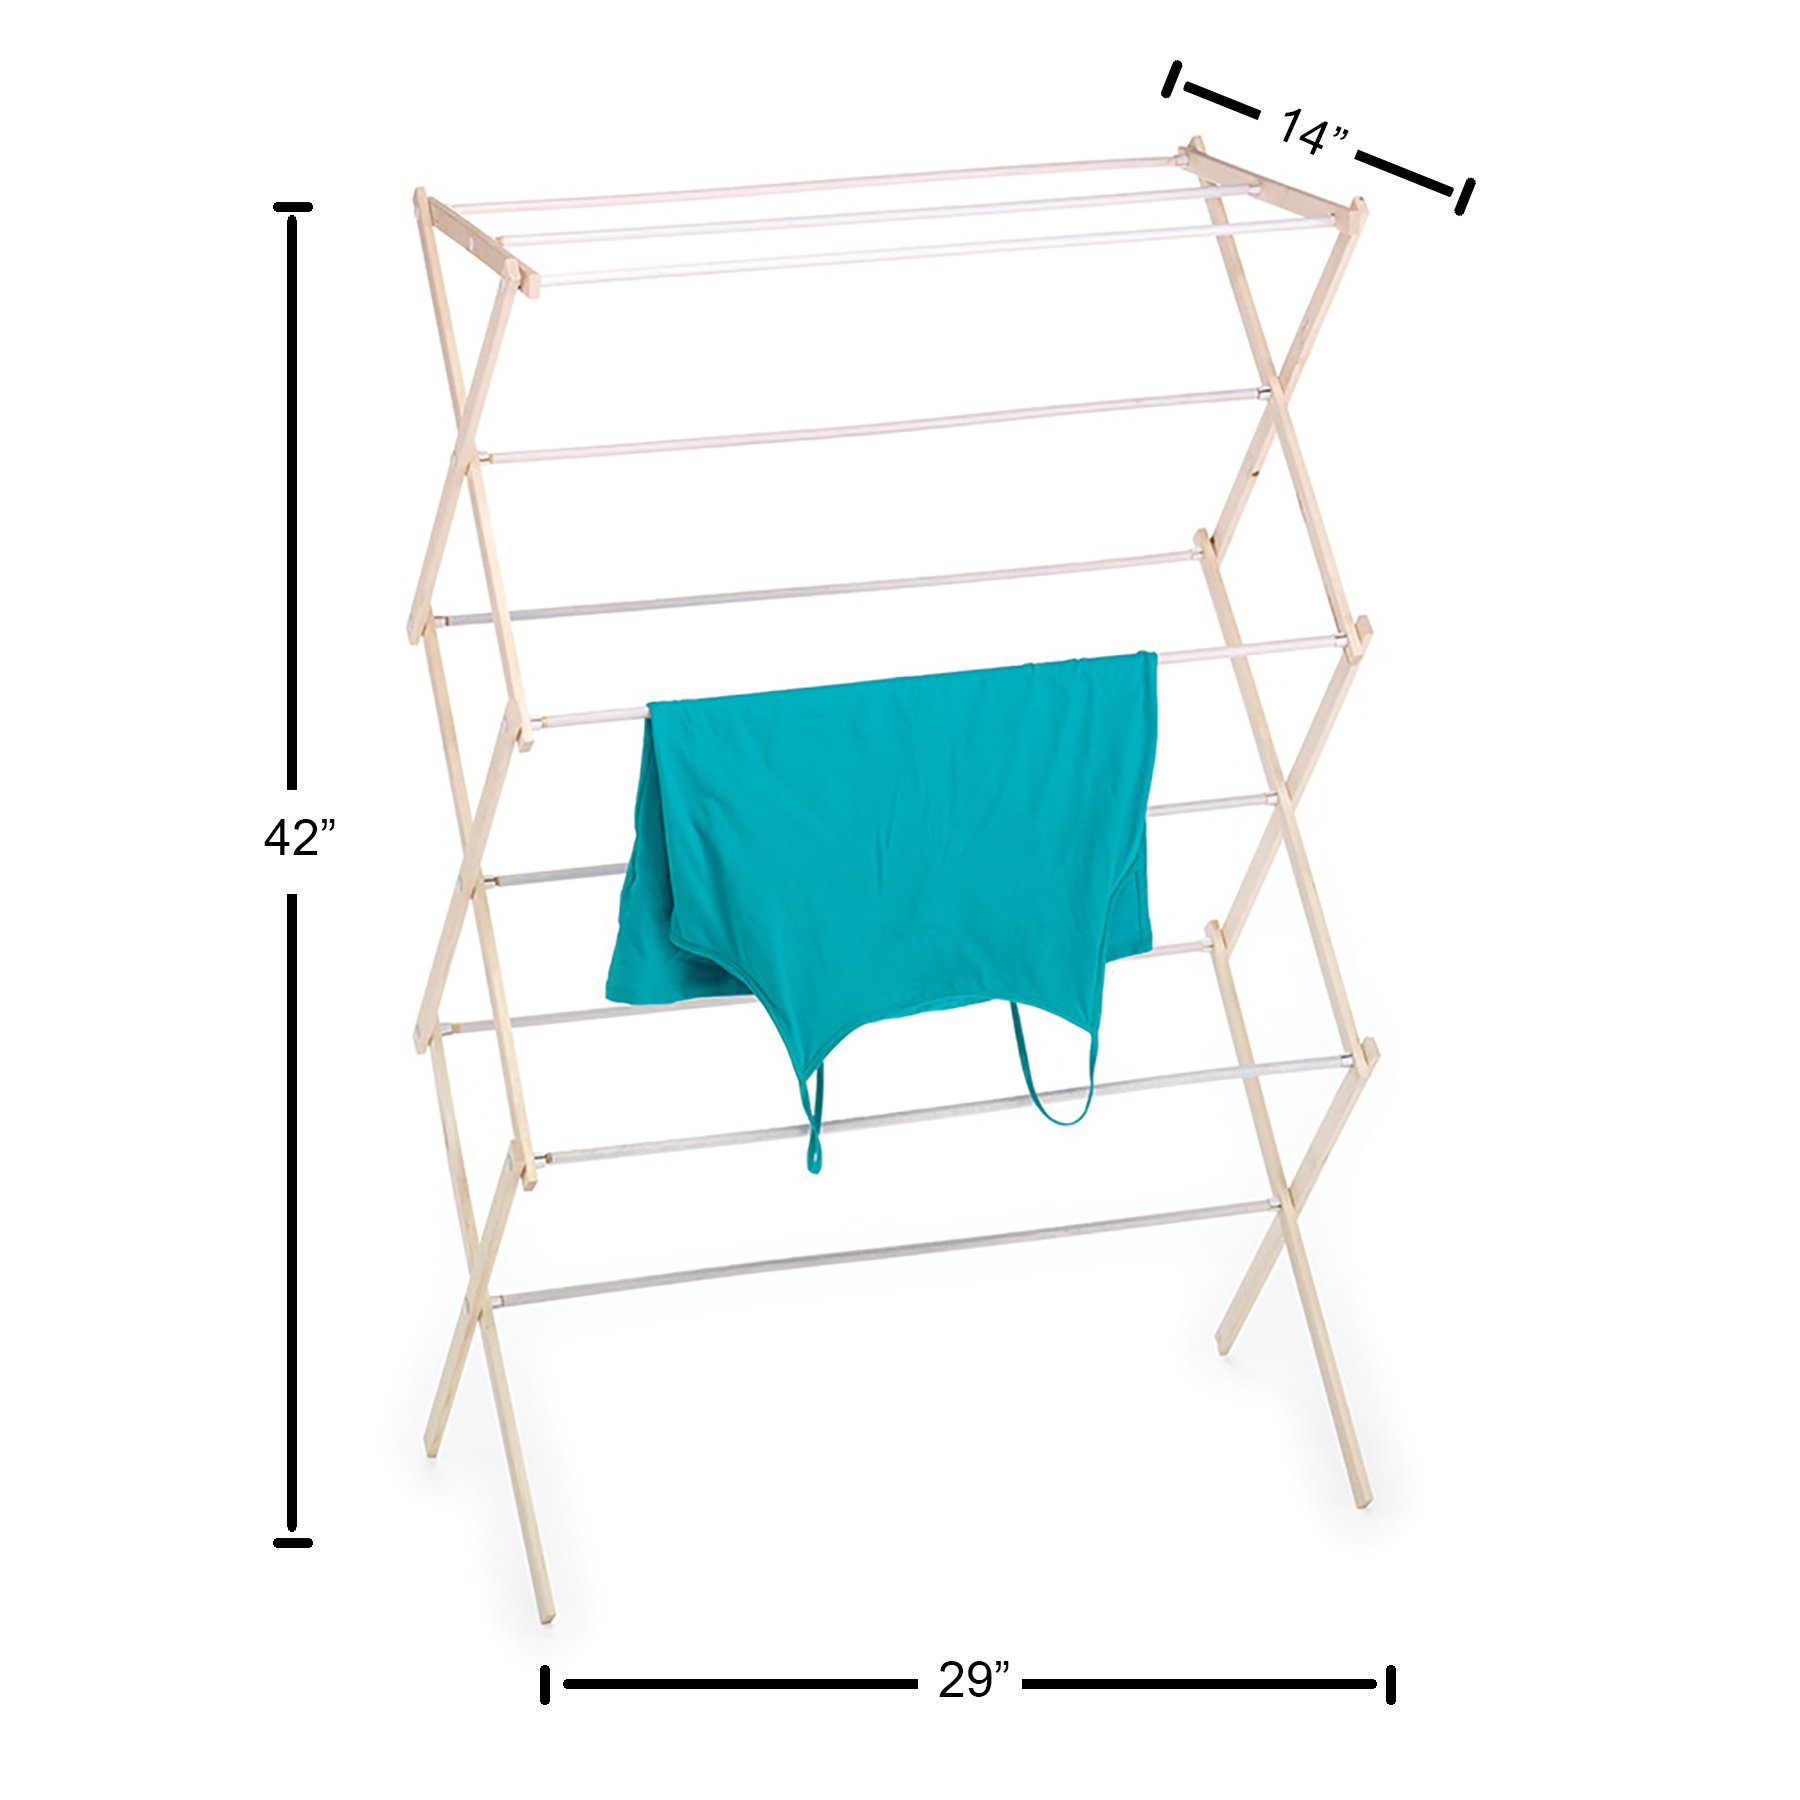 HOMZ Drying Rack, Ready to Assemble, 42'' x 29'' x 14'', Natural Wood (4230031) by HOMZ (Image #3)